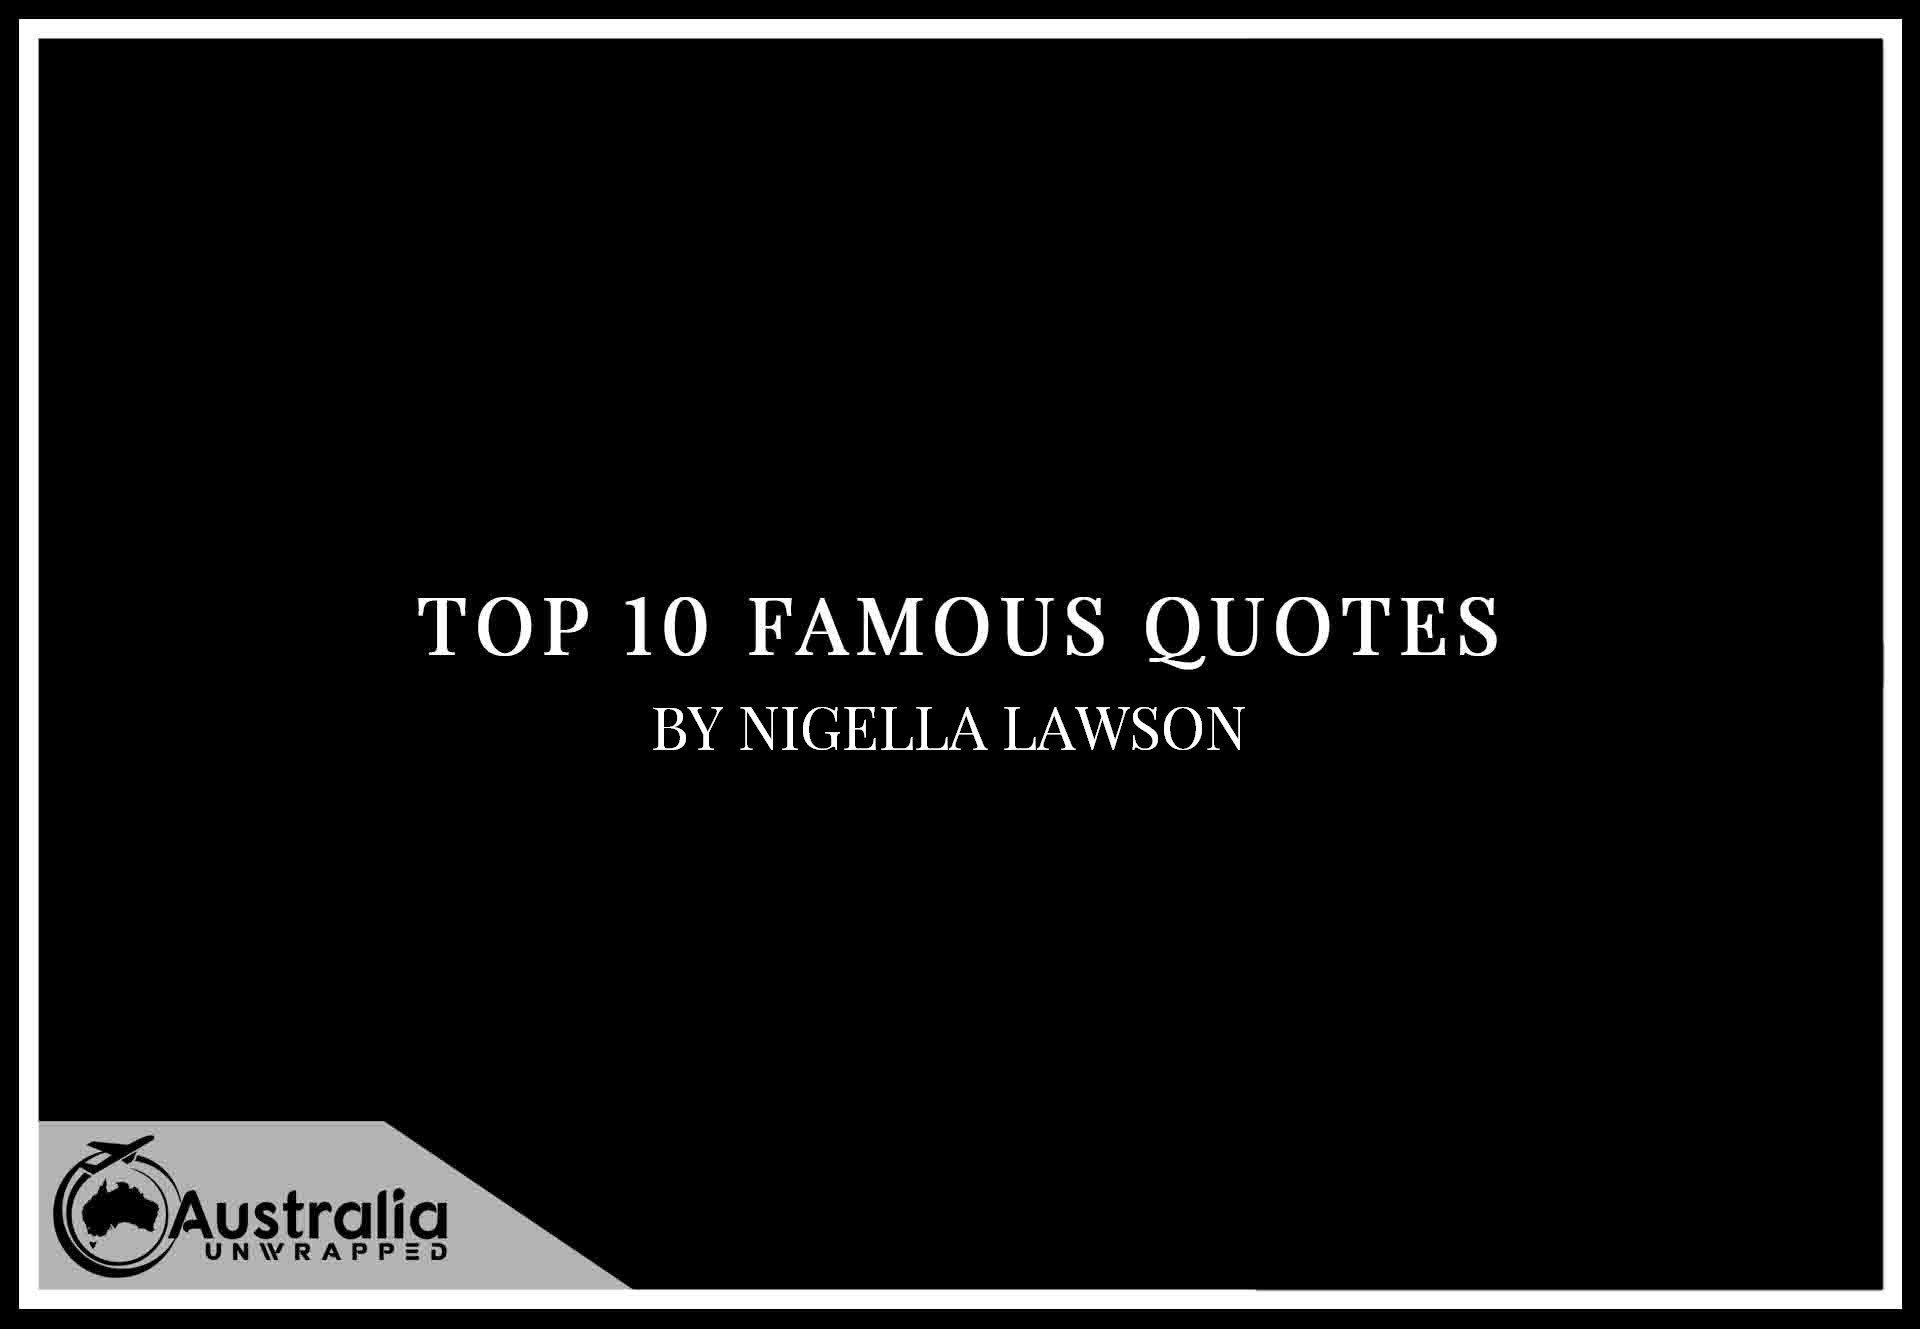 Top 10 Famous Quotes by Author Nigella Lawson